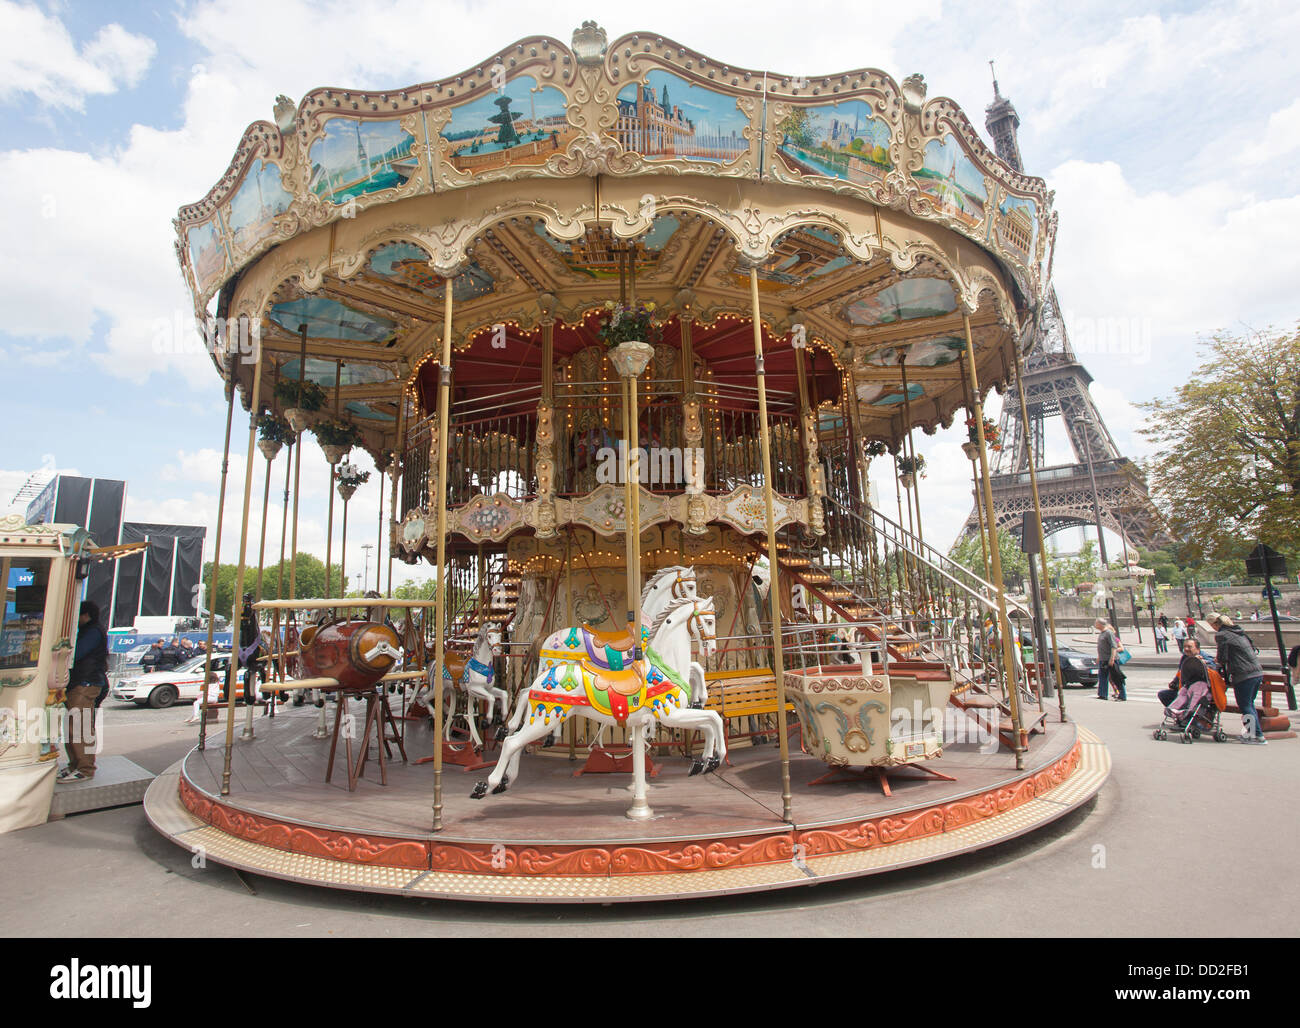 Old Fashioned French style Carousel near the Eiffel Tower in Paris France, also called a Merry-go-Round. - Stock Image